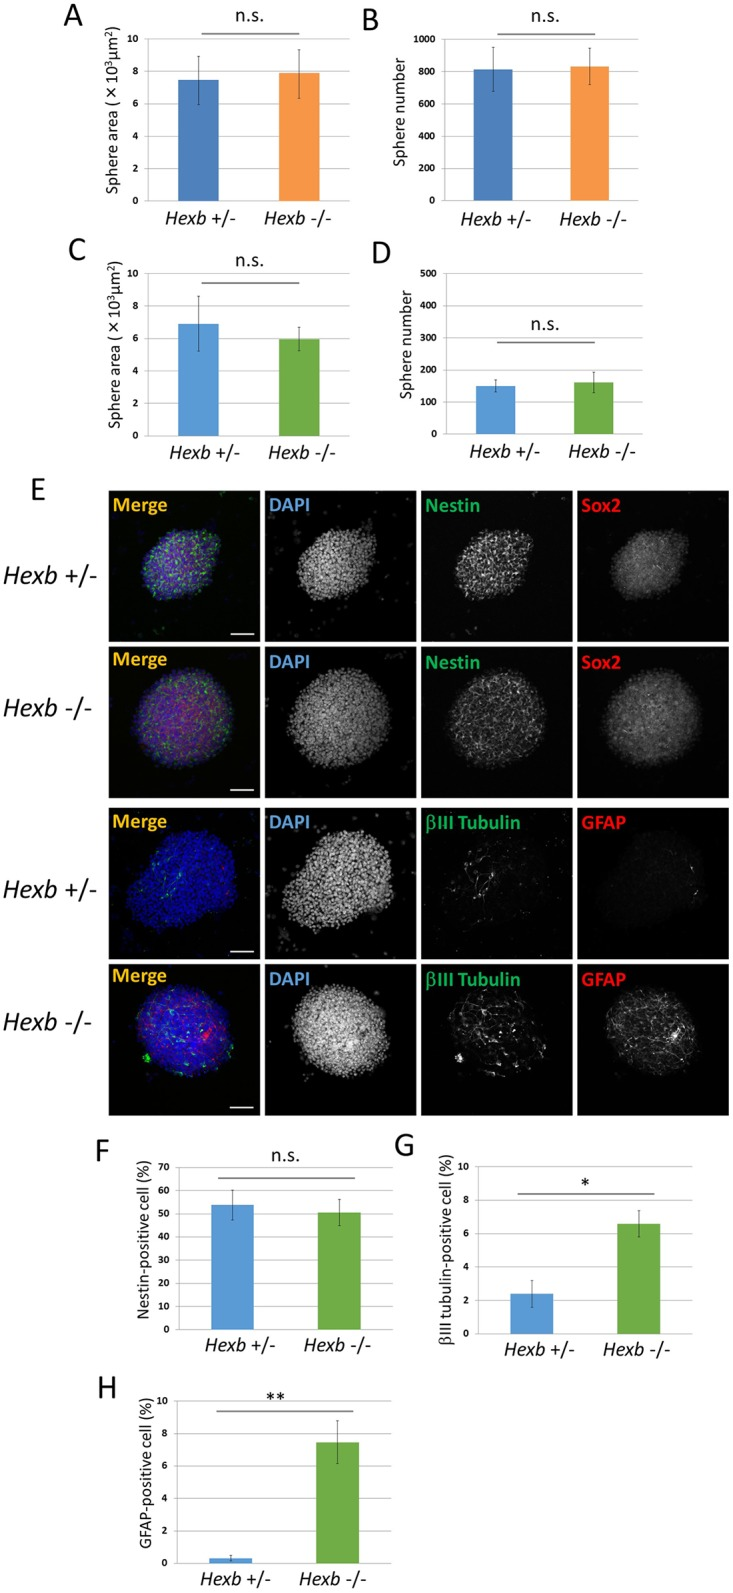 Characterization of NSCs derived from the fetal brain of the mouse SD model. (A−D) Characterization of neurospheres isolated from cerebral cortices of Hexb +/− and Hexb −/− mice at embryonic day 12.5. For each sample, 20 images of different fields (1.3 × 1.8 mm) were photographed, and the areas (A, C) and numbers (B, D) of primary (A, B) and secondary (C, D) neurospheres cultured for 4 days were measured. (E−H) Expression pattern of primary neurospheres isolated from cerebral cortices at embryonic day 12.5 of Hexb +/− and Hexb −/− mice. (E) Primary neurospheres were collected on poly-L-ornithine/fibronectin-coated glass slides by cytospin centrifugation, fixed, and immunostained for nestin (green), Sox2 (red), βIII tubulin (green), and GFAP (red). Blue represents DAPI staining. The scale bar indicates 100 μm. (F−H) Primary neurospheres were dissociated mechanically to single-cell suspensions. Cells were plated onto poly-L-ornithine/fibronectin-coated glass coverslips. One hour after plating, cells were fixed and immunostained for nestin, βIII tubulin, and GFAP with DAPI nuclear staining. For each sample, 20 fluorescence images of different fields (1.3 × 1.8 mm) were obtained. The percentages of positive cells (% of total DAPI count) were then determined using ImageJ (National Institutes of Health, Bethesda, MD). The percentages of NSCs (F), neurons (G), and astrocytes (H) were measured. Values represent the mean ± S.E. of five independent experiments. n.s.: Not significantly different ( P > 0.05), * P